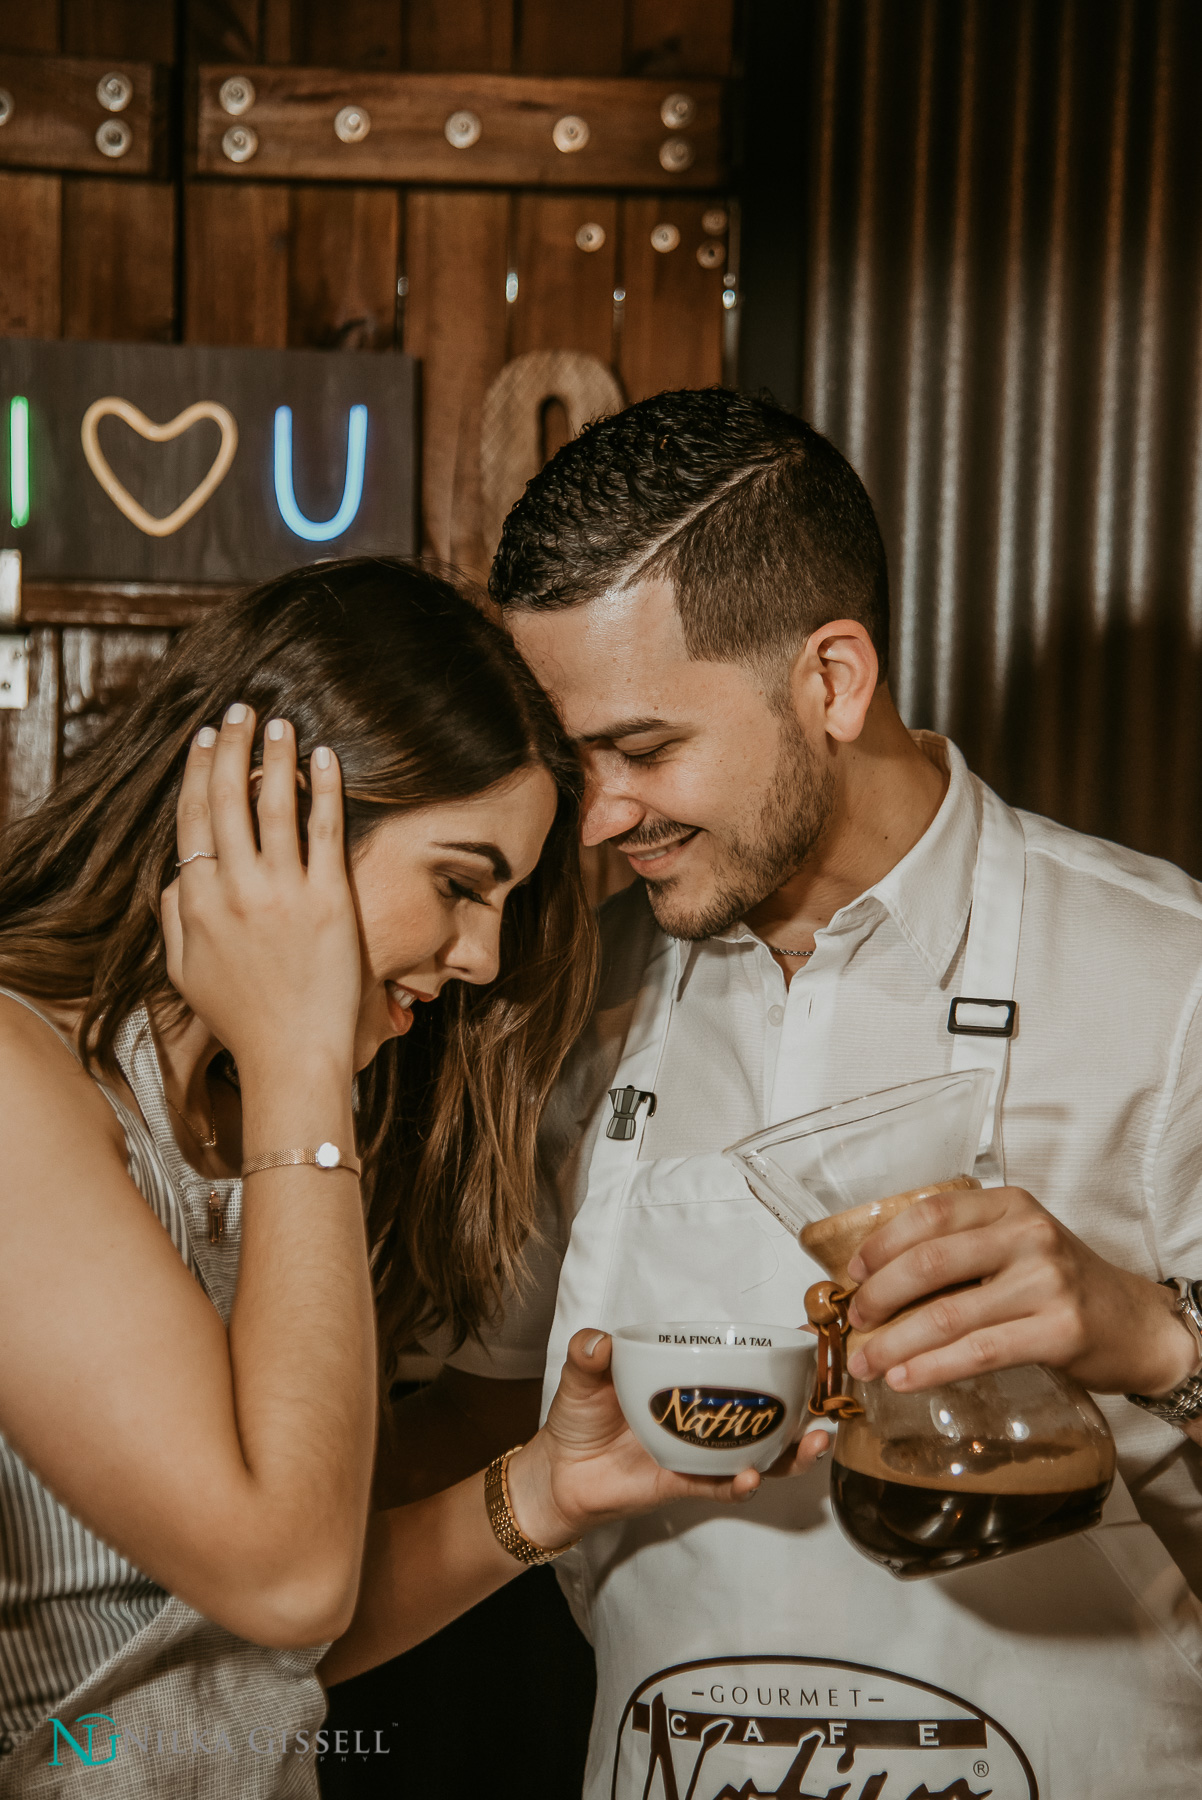 Cafe Nativo Coffee Themed Engagement Session in Puerto Rico